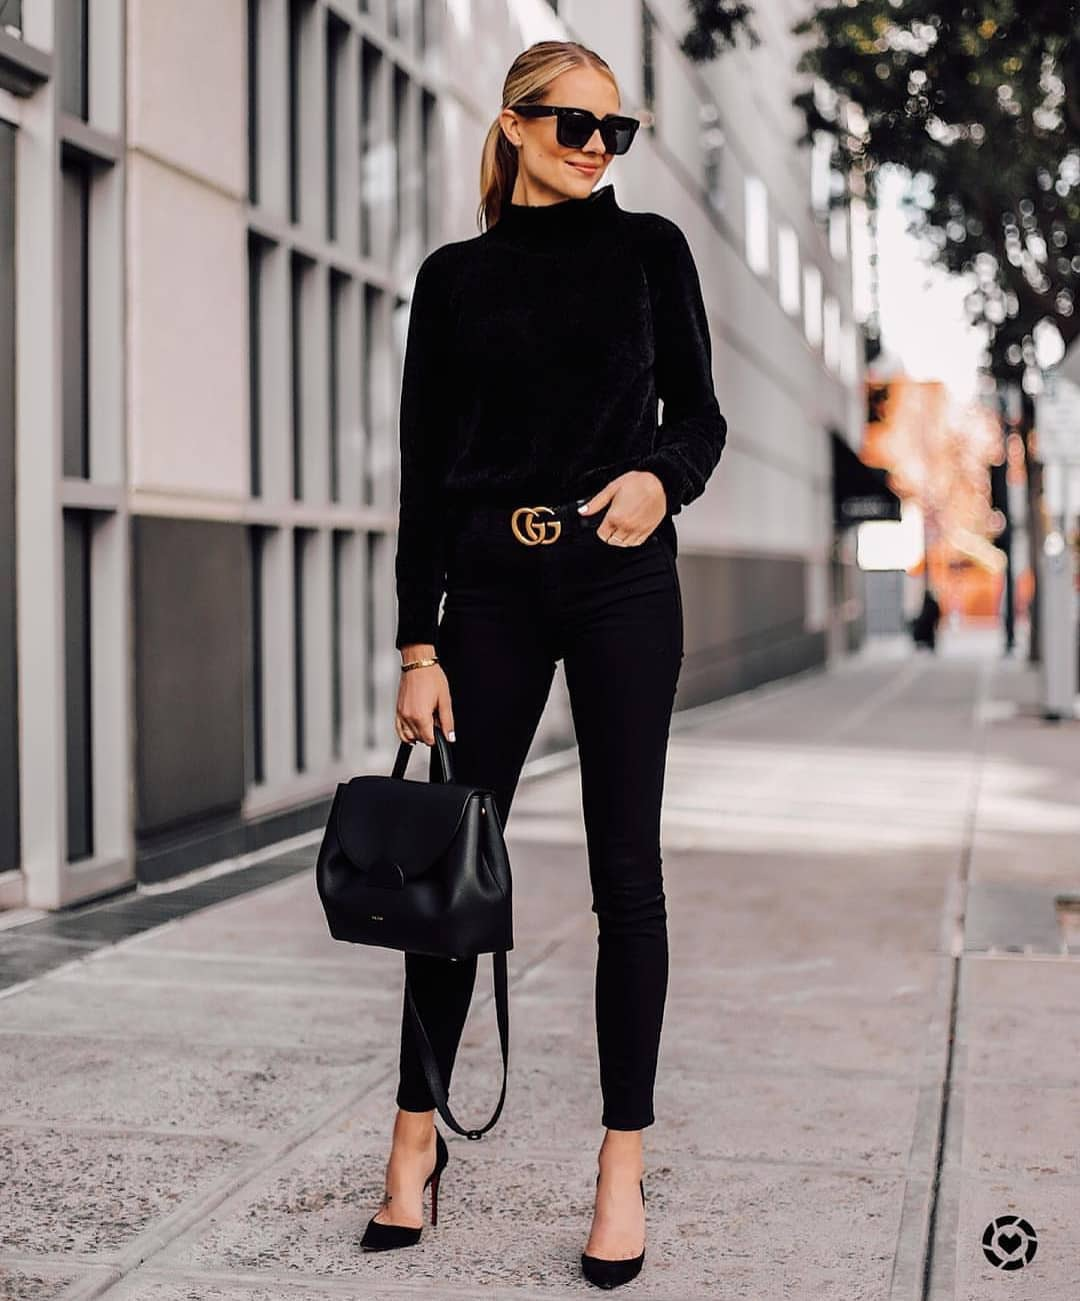 sweater knitted sweater black sweater pumps black skinny jeans black bag shoulder bag gucci belt black sunglasses